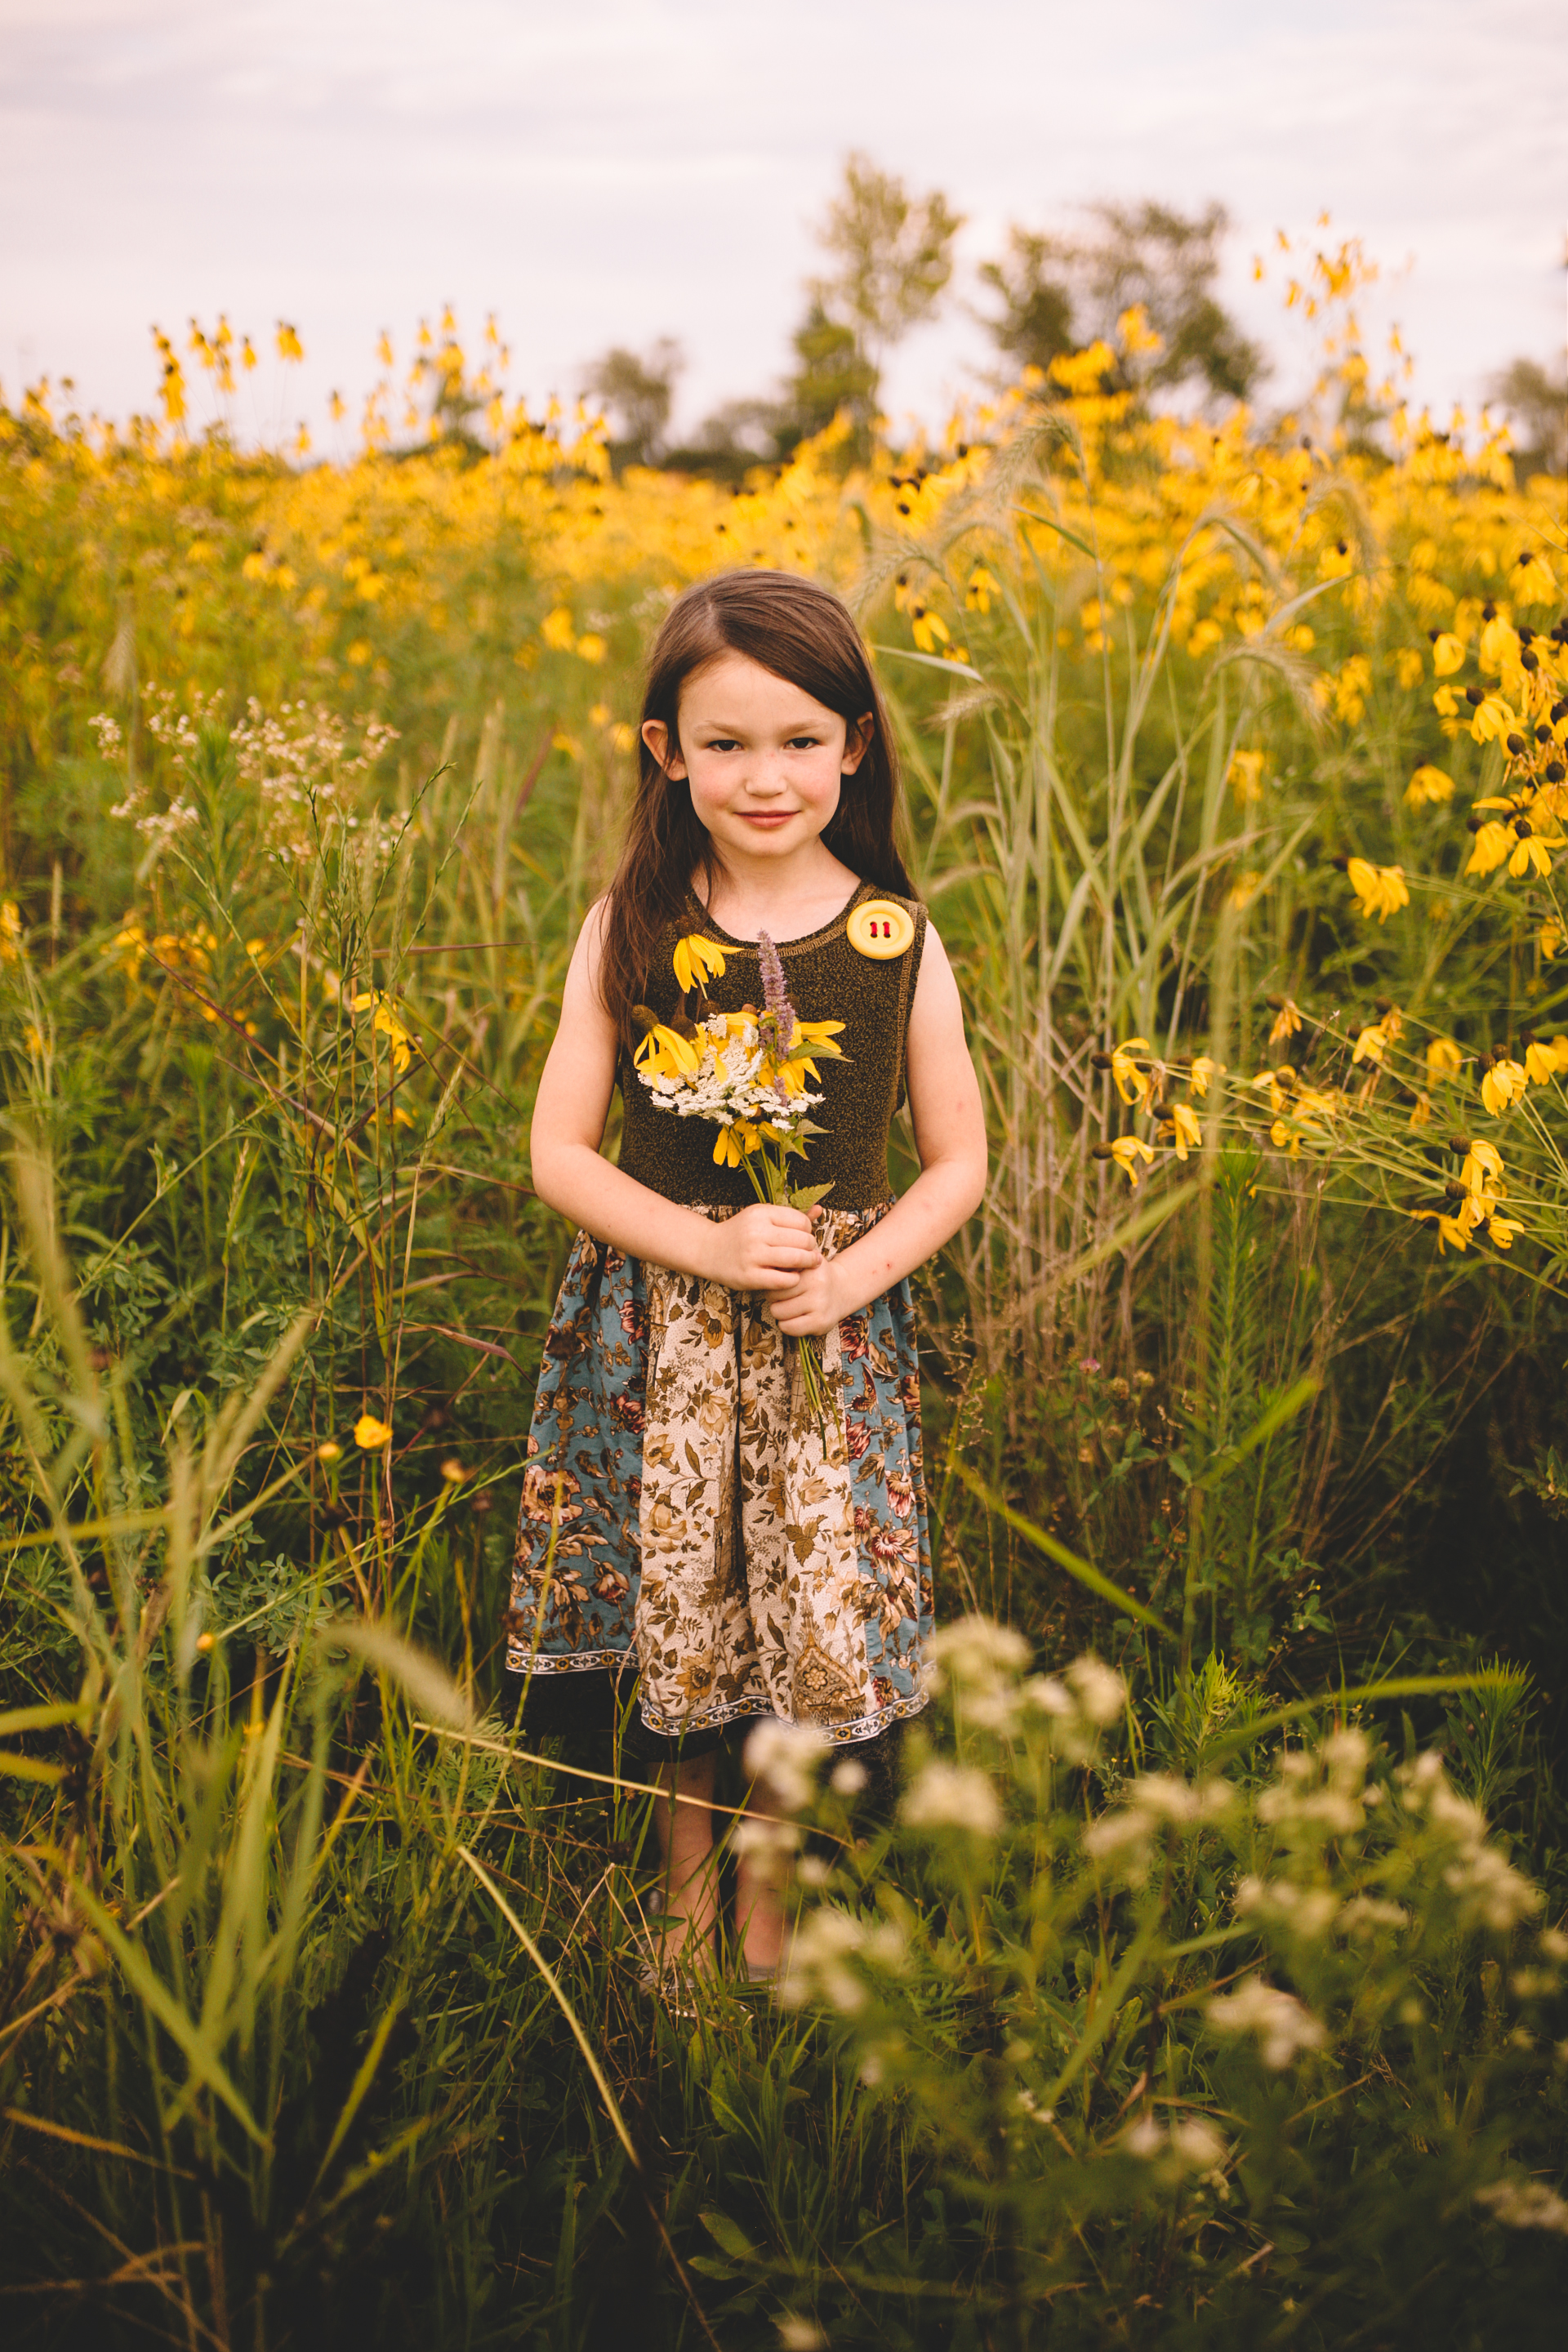 Golden Flower Field Mini Session Indianapolis IN (27 of 58).jpg